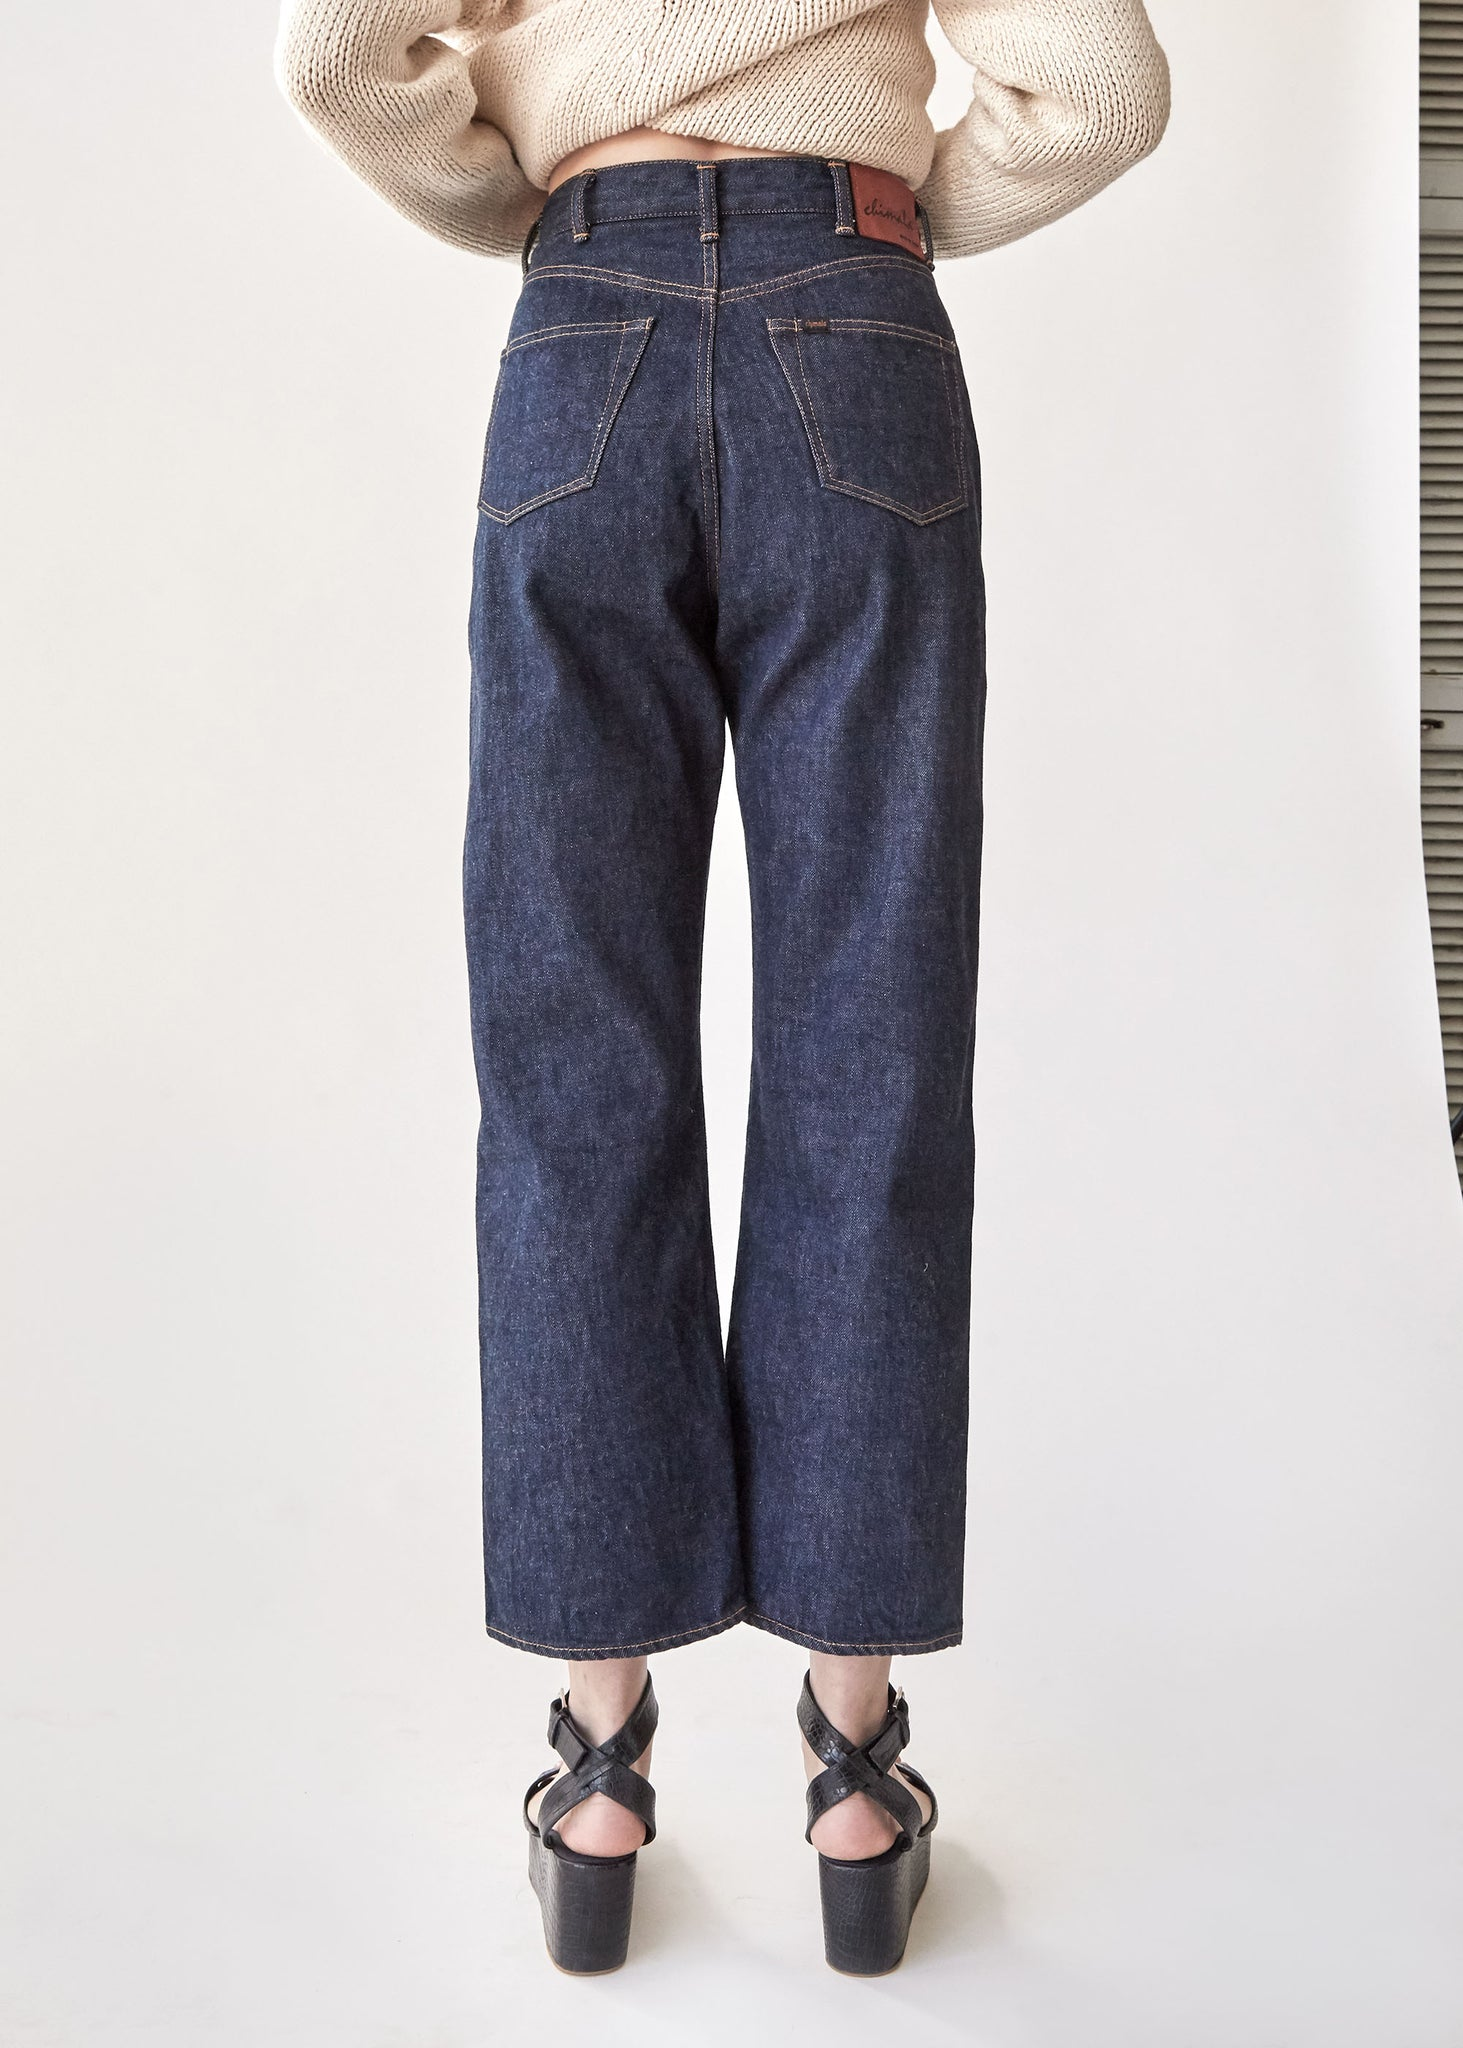 Monroe Cut Denim in 13 oz Rinse - SOLD OUT